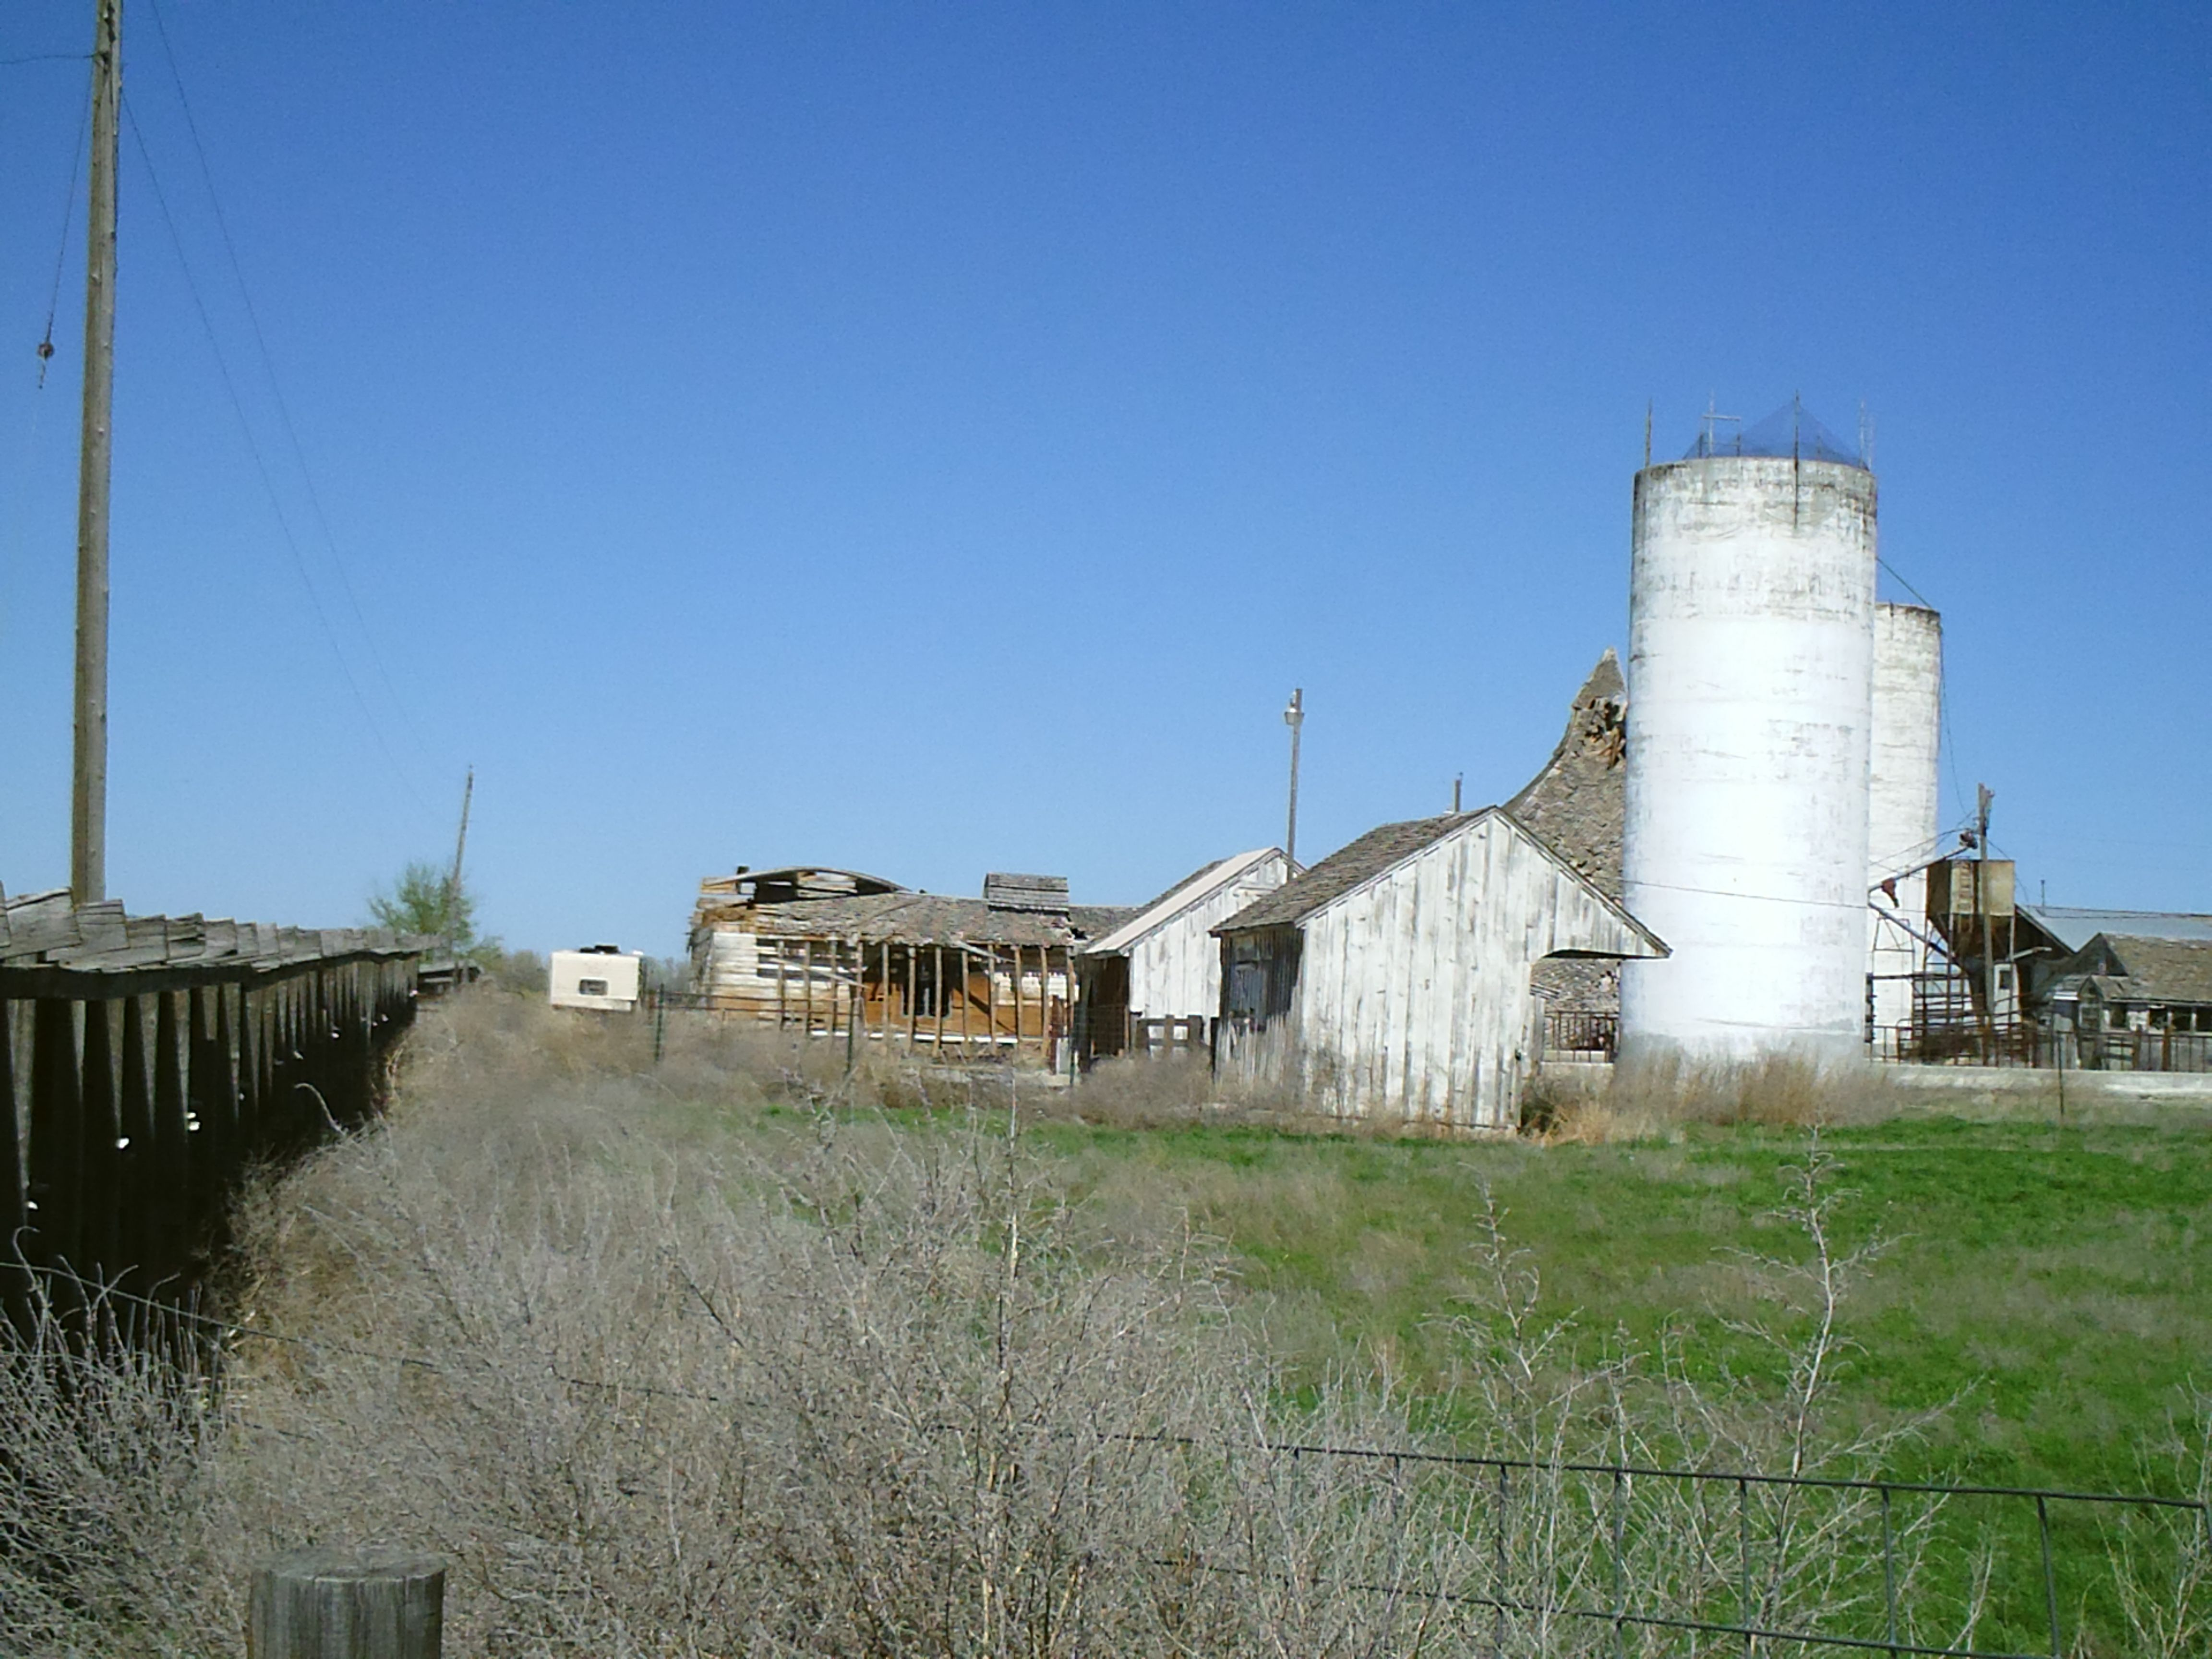 Pt Merdian Nampa Idaho I Ve Watched This Barn For Years It Was Bowed In The Middle And I Always To My Kids I Wish I Was House Styles Nampa Idaho Building